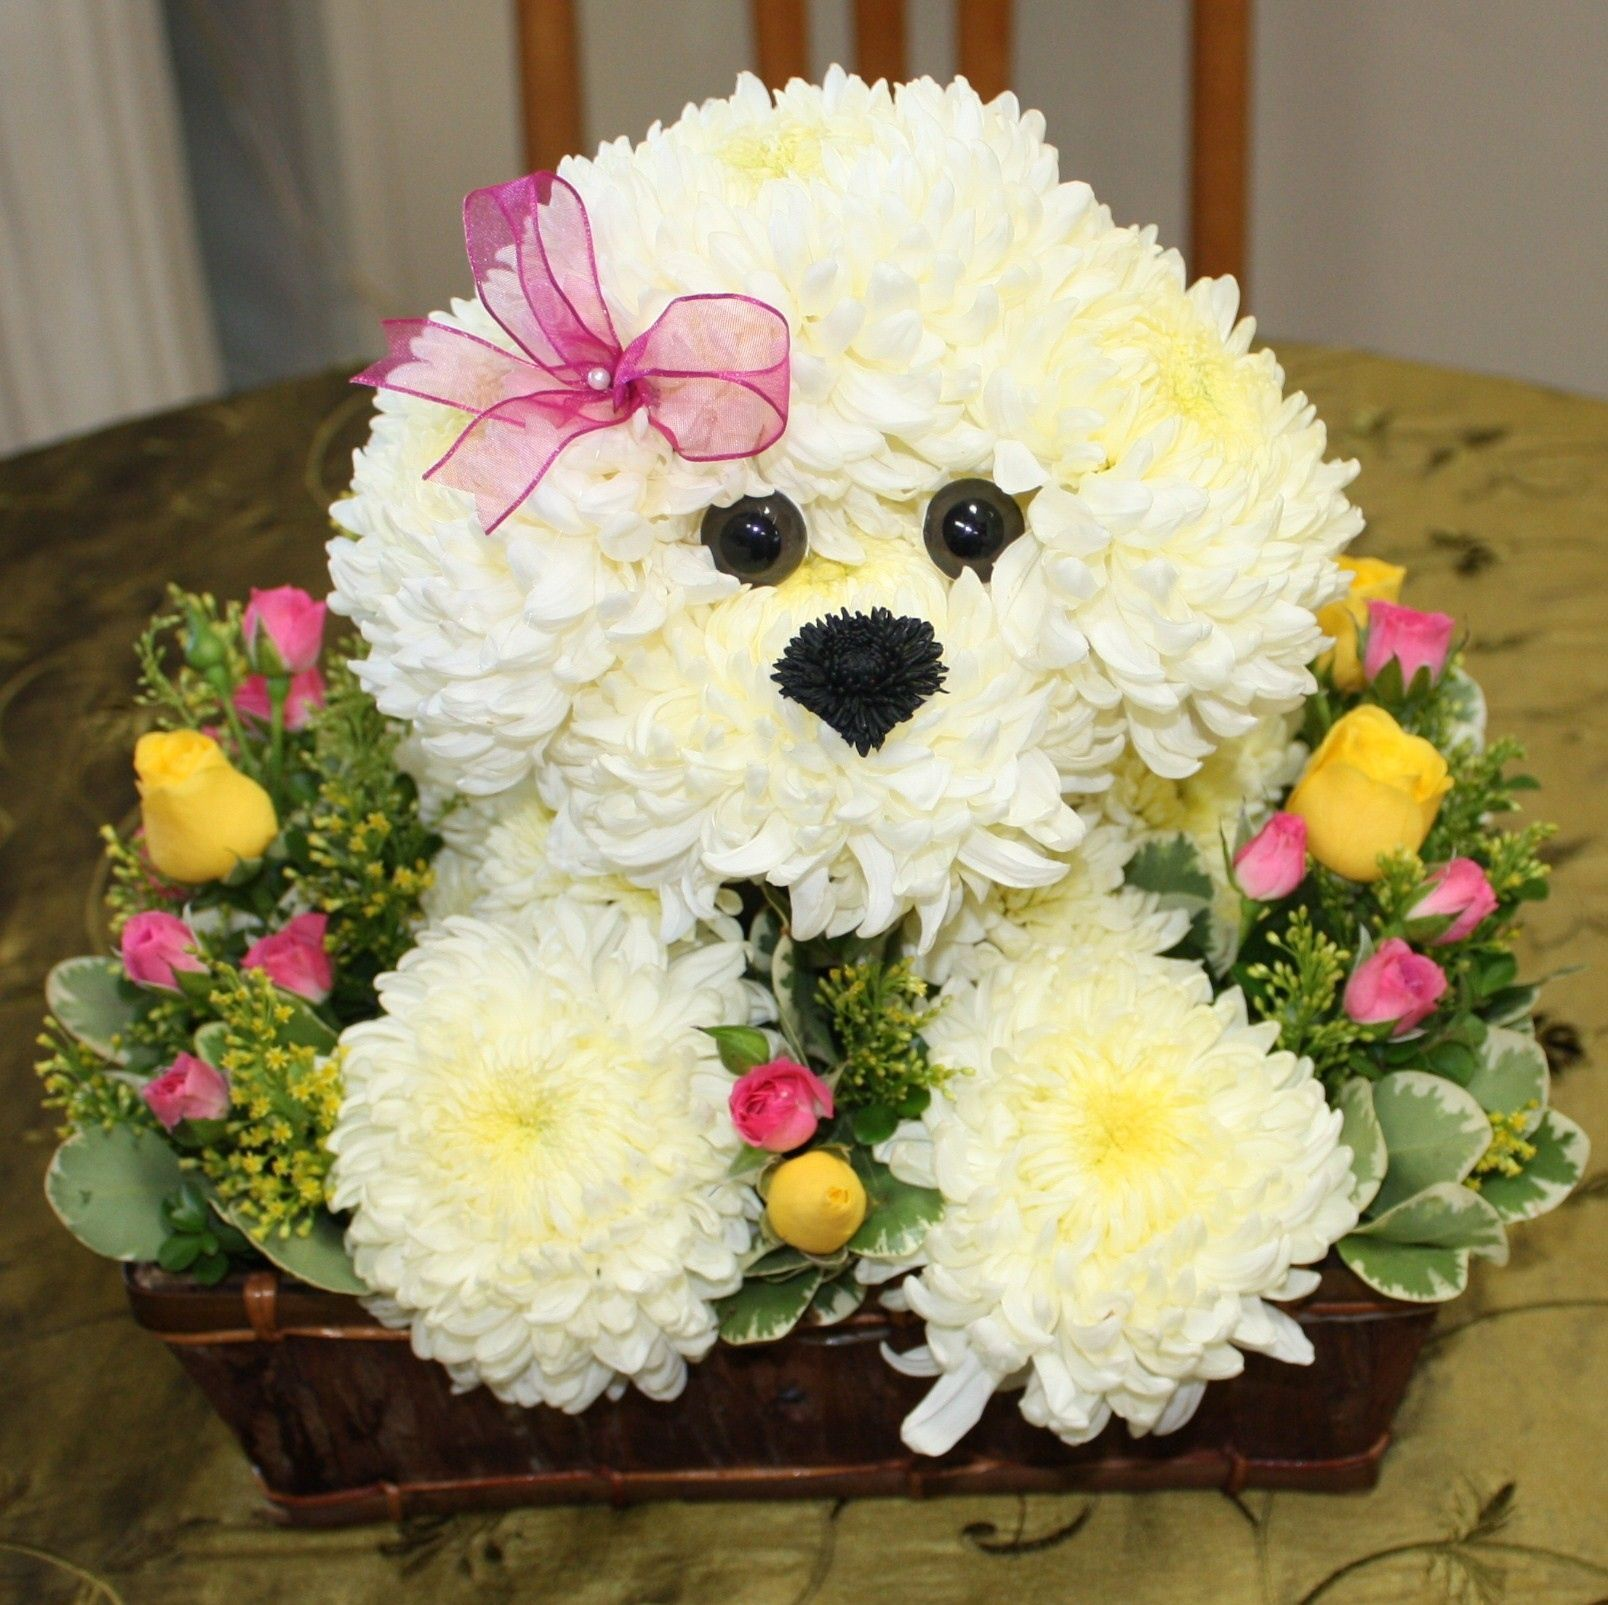 Flower Arrangements Shaped Like Dogs New 153 Best Images About Dog And Animal Flower Arrangements Creative Flower Arrangements Unique Flower Arrangements Unique Floral Arrangements